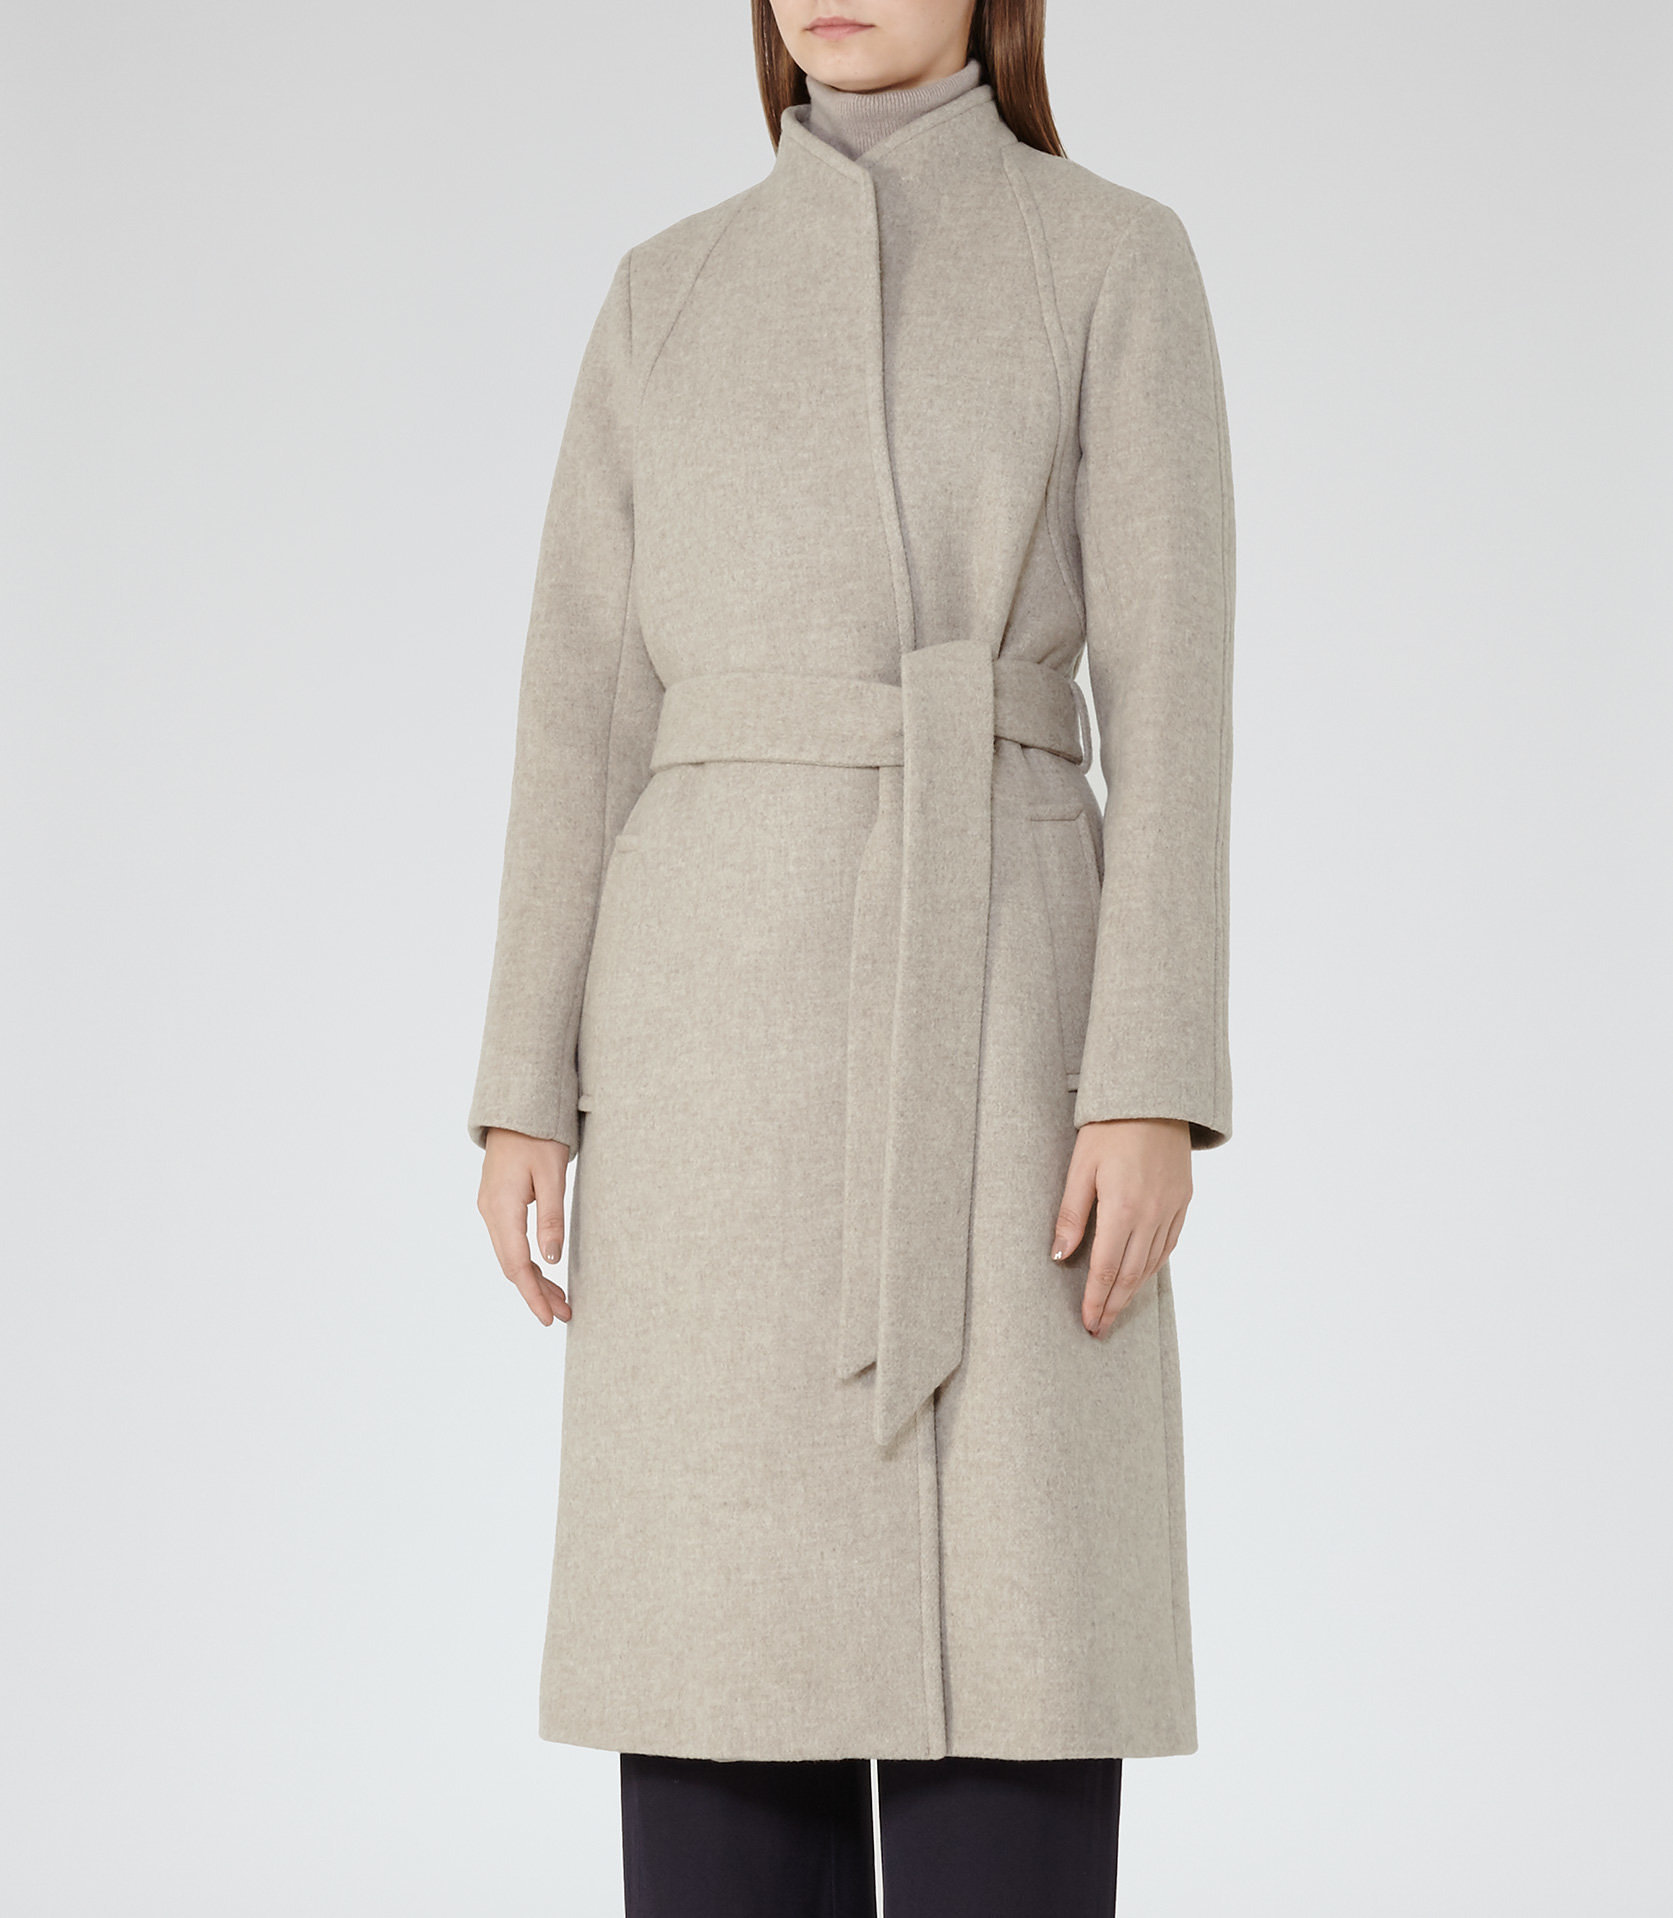 ELIAS COLLARLESS COAT Oatmeal £350 Click to visit Reiss